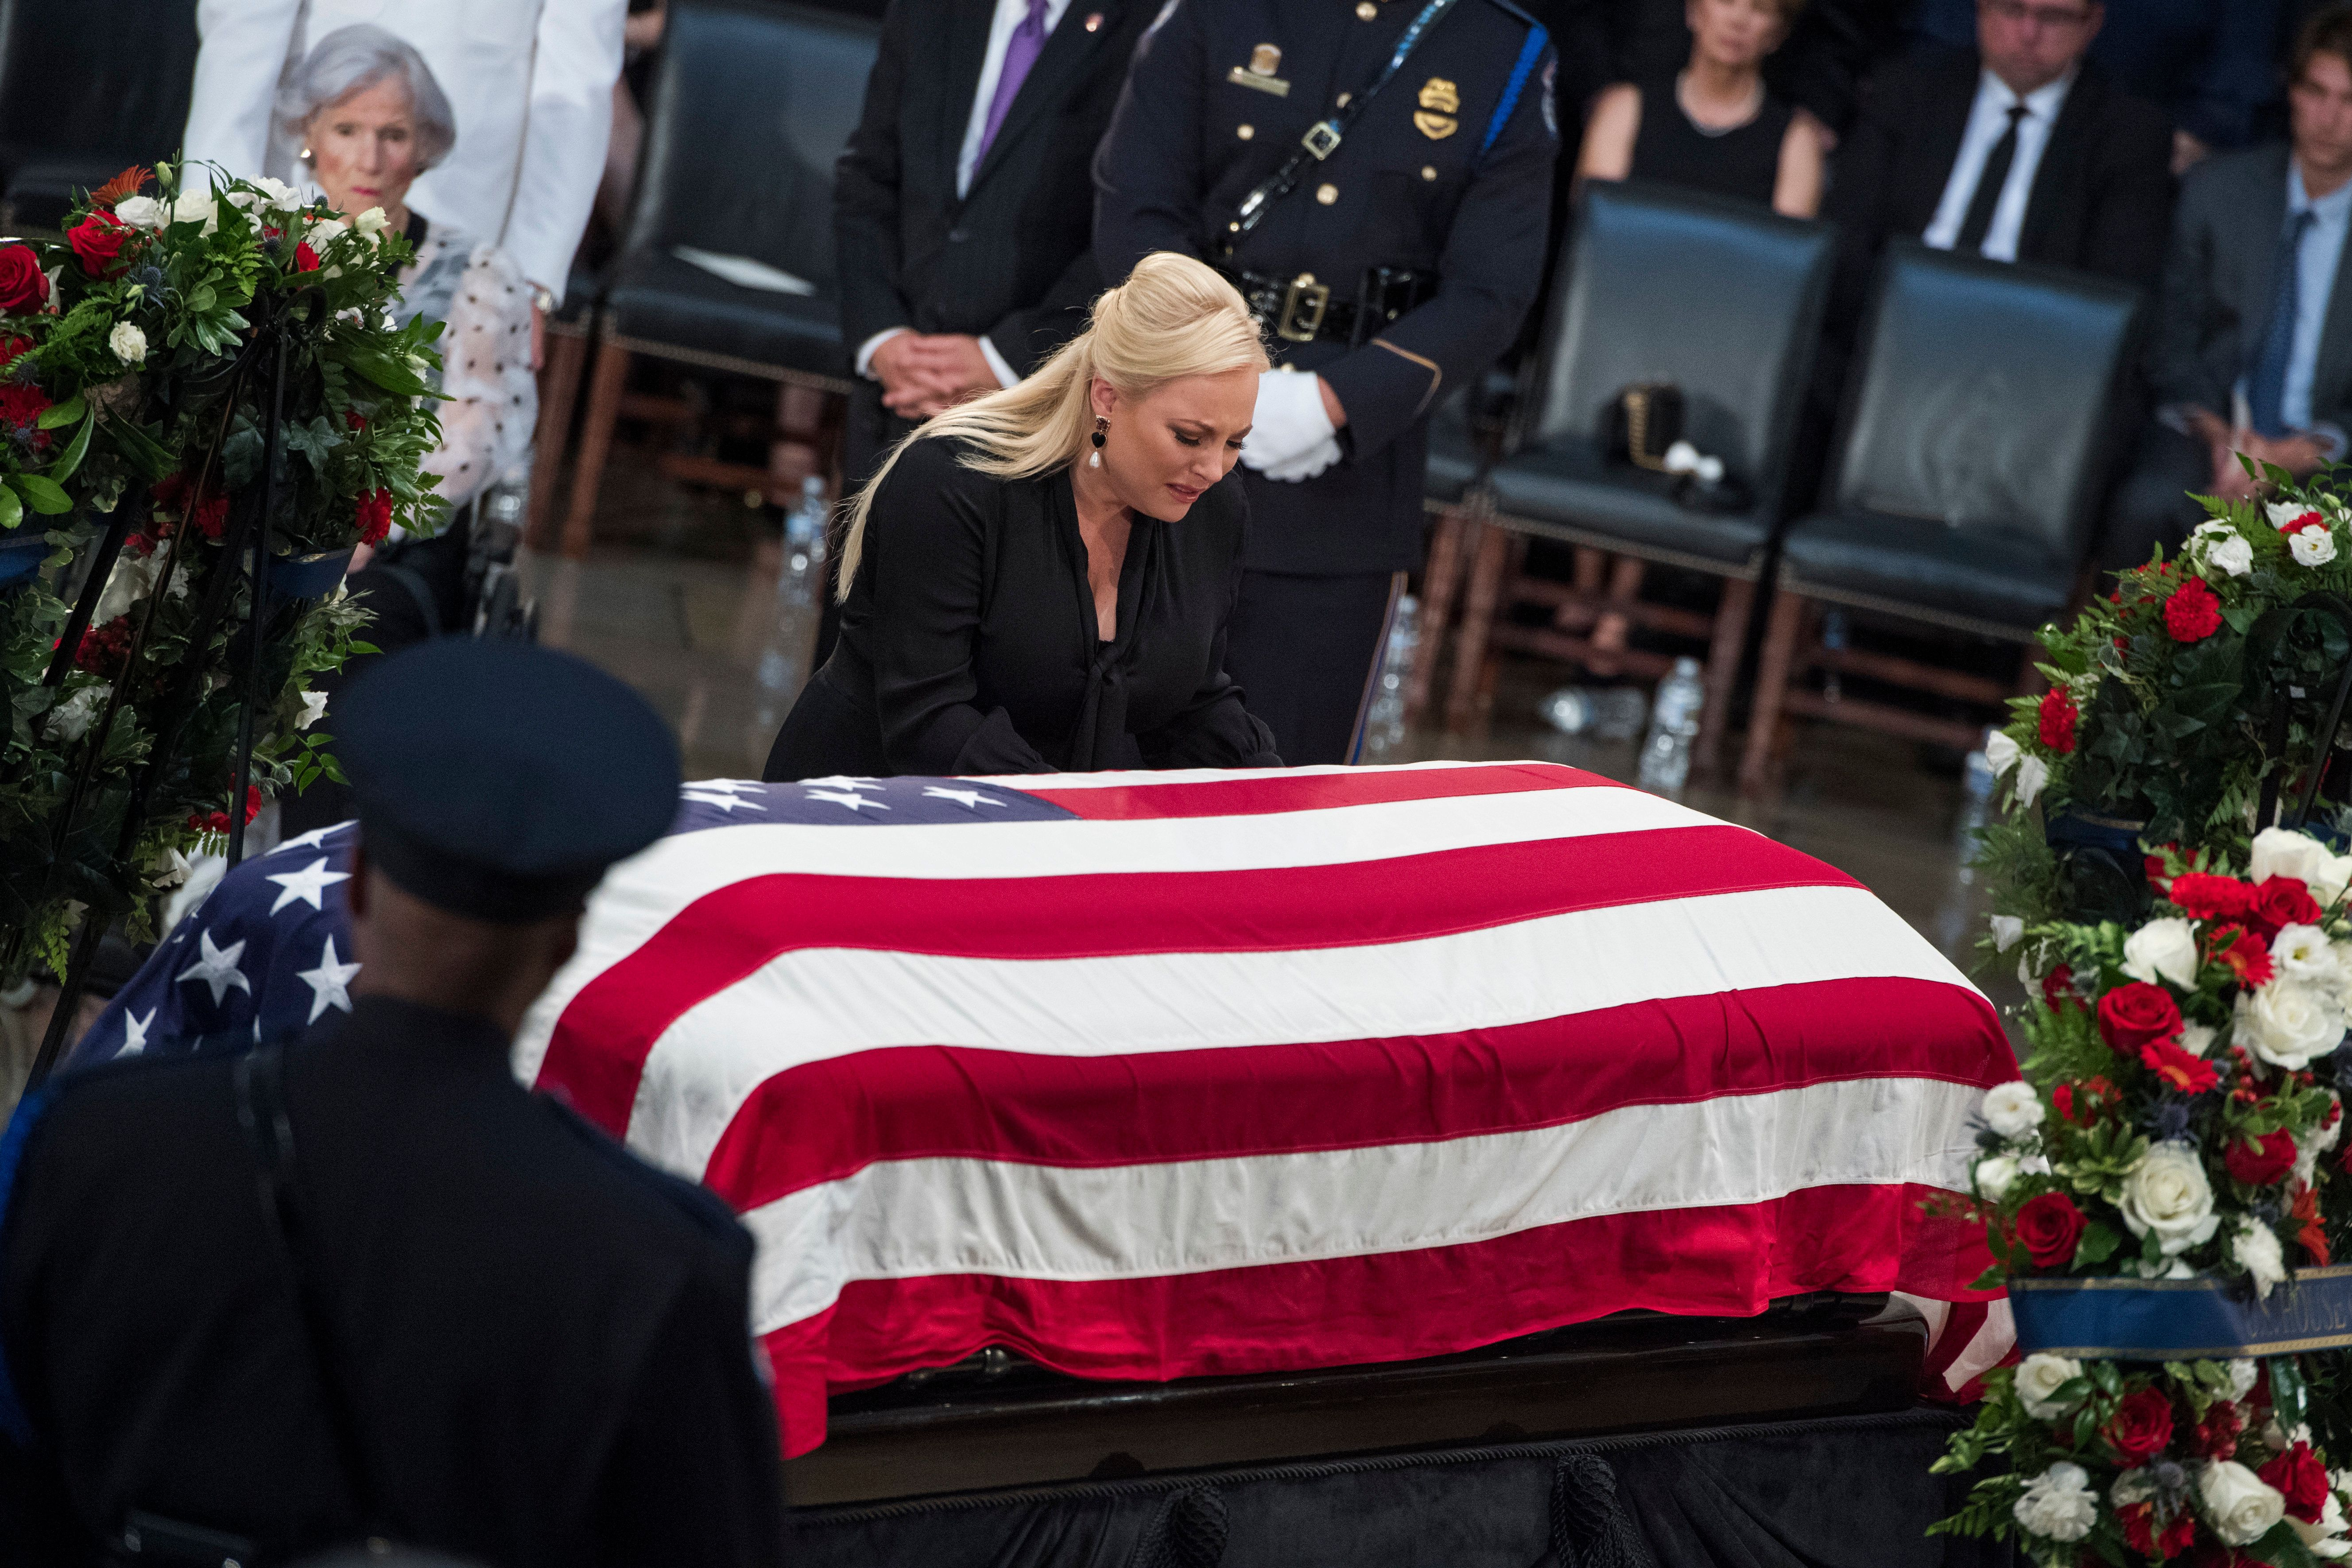 Meghan McCain knells at the coffin of her father, Sen. John McCain, R-Ariz.